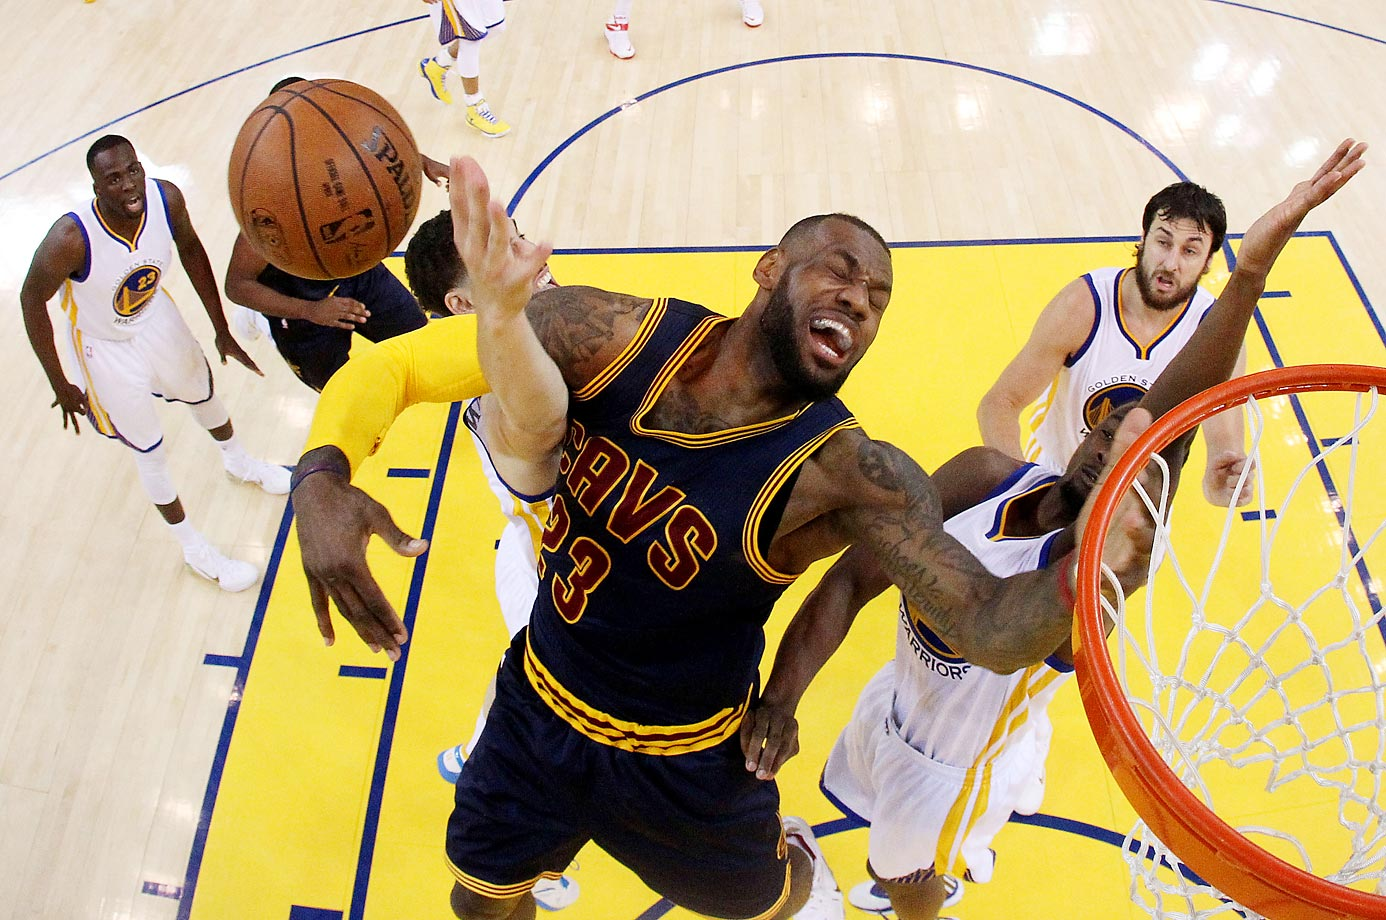 LeBron James gets hacked by Klay Thompson of the Golden State Warriors as he goes up for a shot in Game 1 of the NBA Finals at Oracle Arena on June 4.